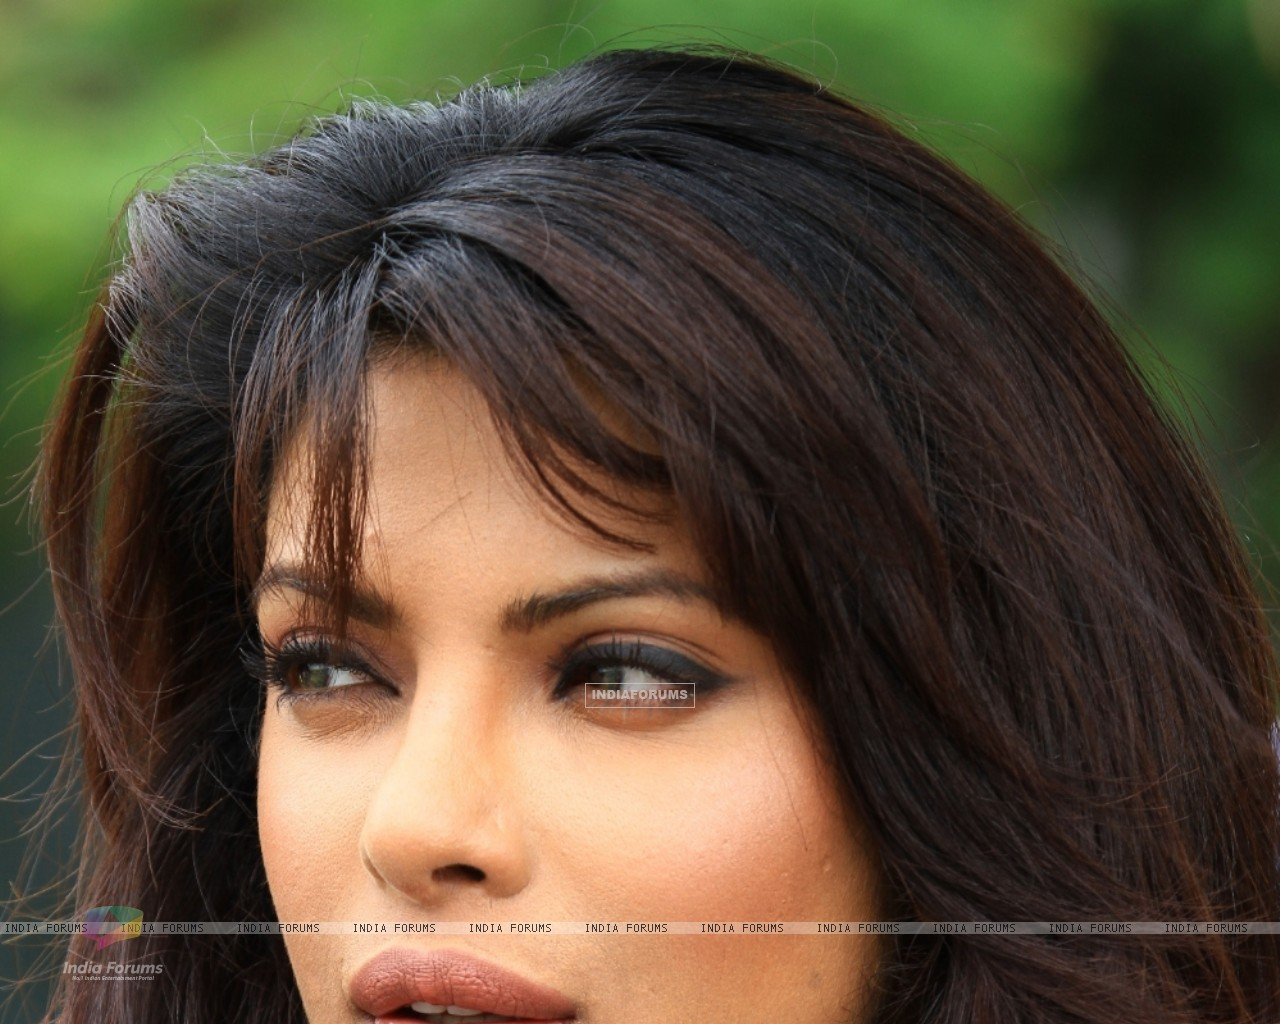 Priyanka Chopra as a host (96052) size:1280x1024